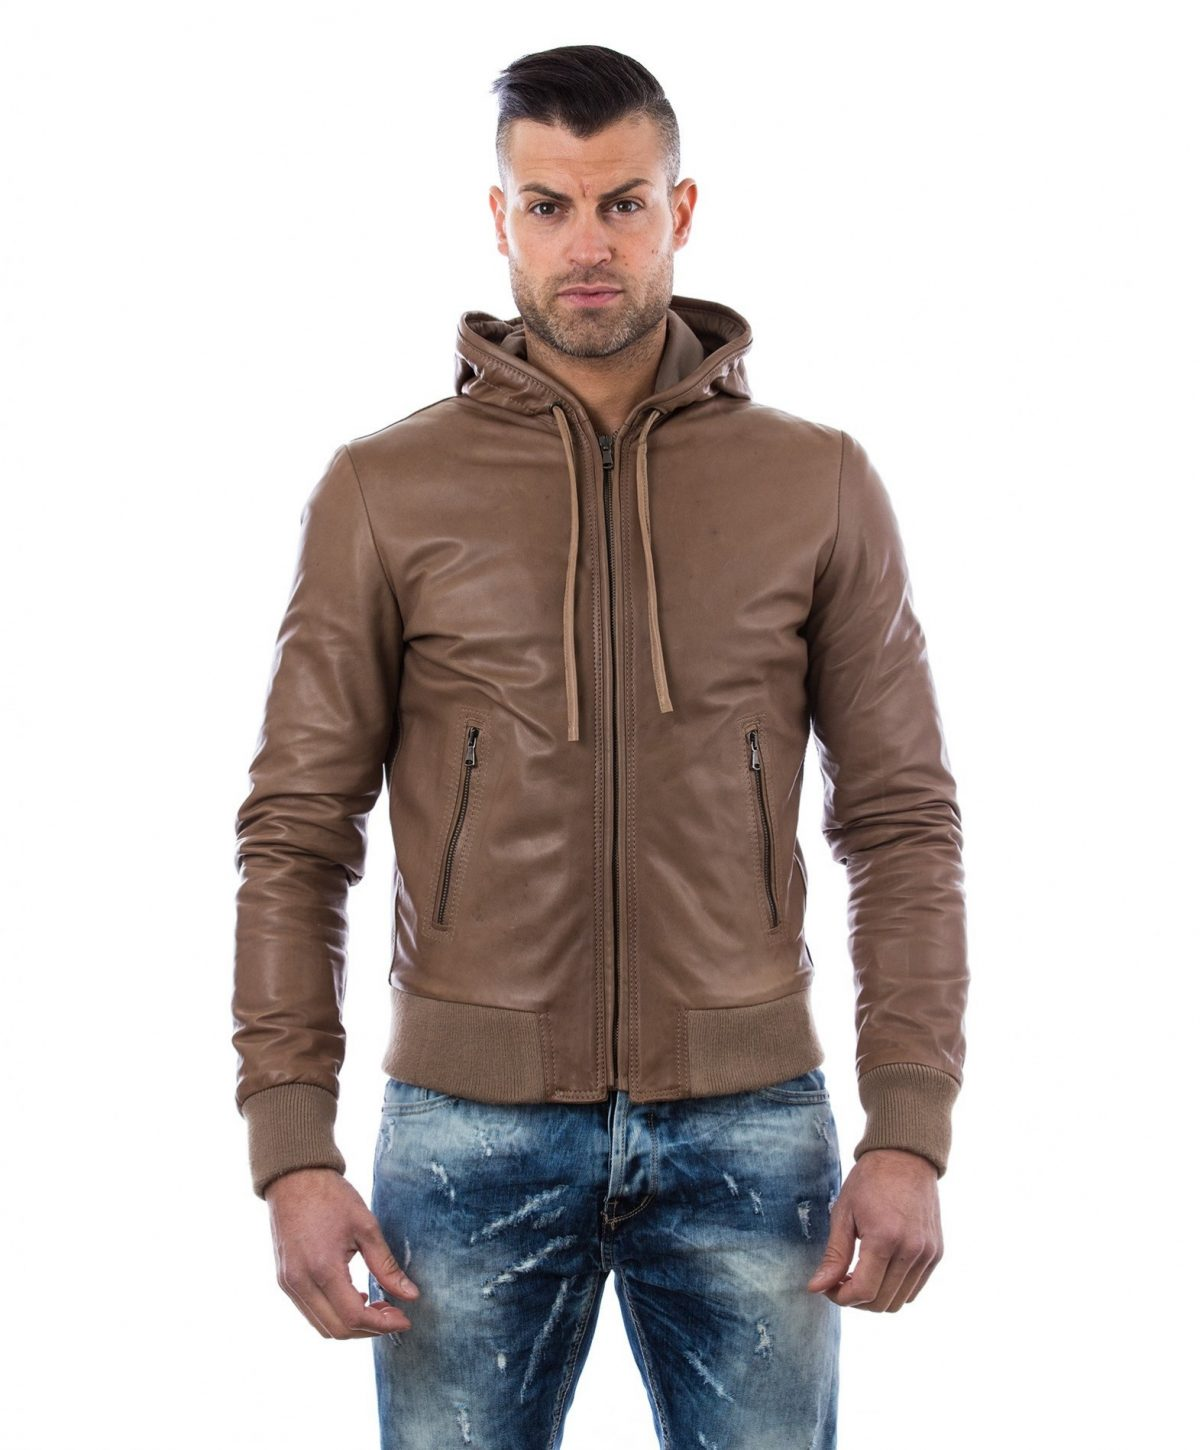 man-leather-jacket-with-hood-and-soft-lamb-leather-beige-biancolino-spring-summer-darienzocollezioniit